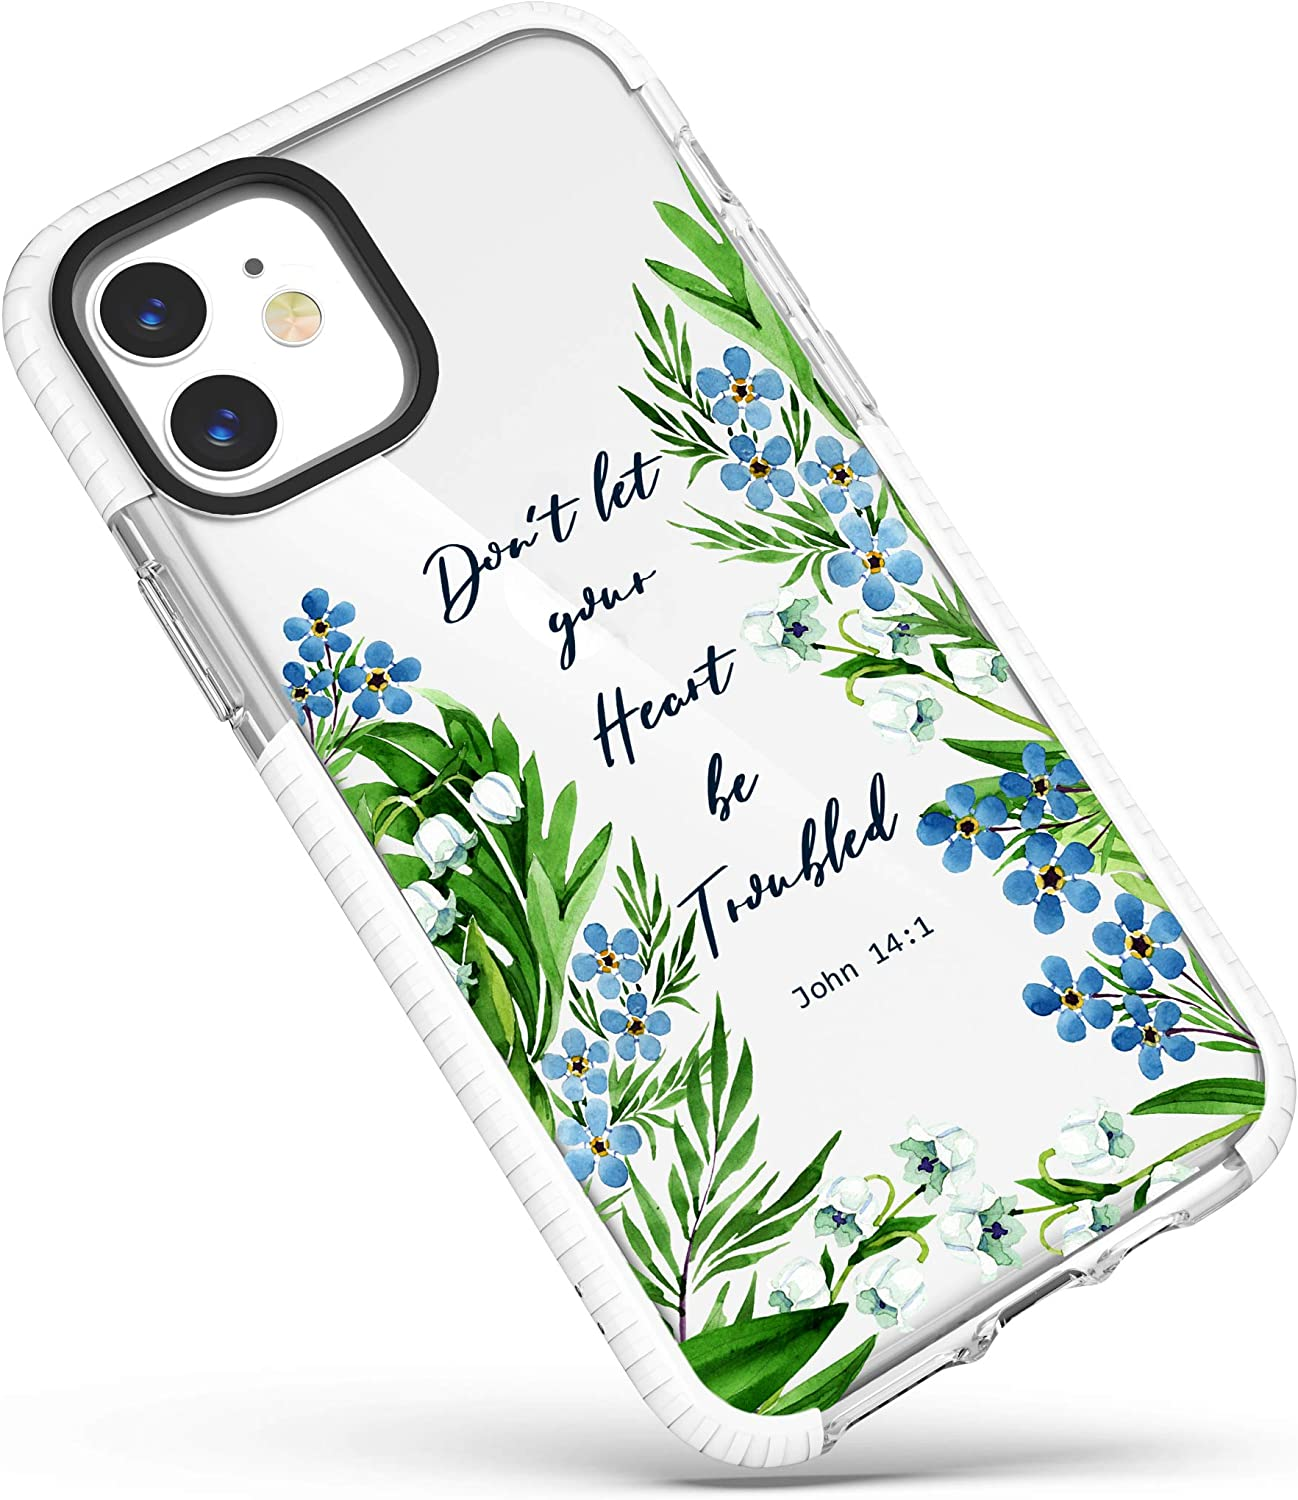 iPhone X case floral lilies iPhone 12 Pro Max Case White lily flower iPhone 12 Case gift for her iPhone 11 Pro Max Case iPhone 8 case